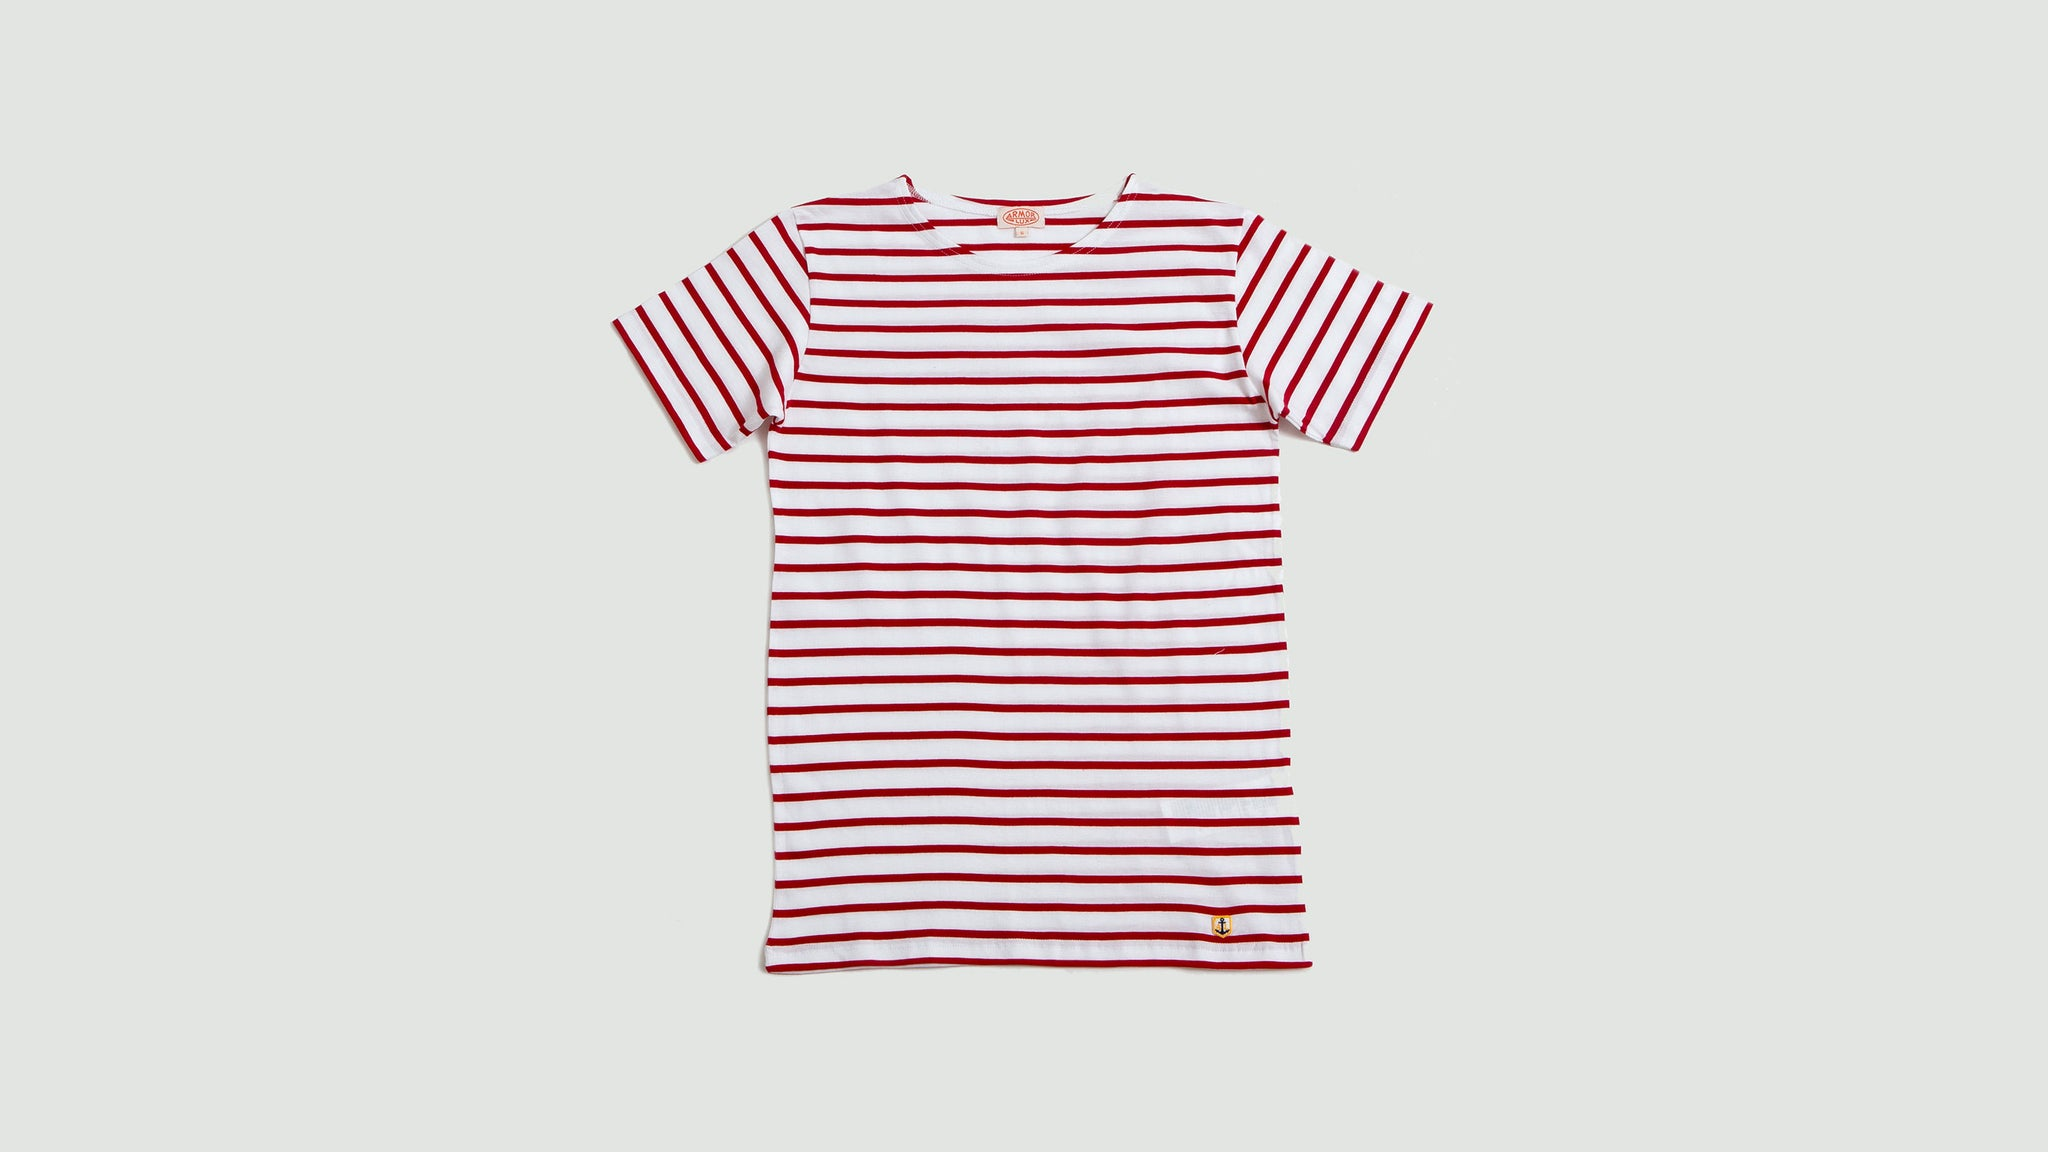 Armor Lux. Sailor shirt s/s white/dark red